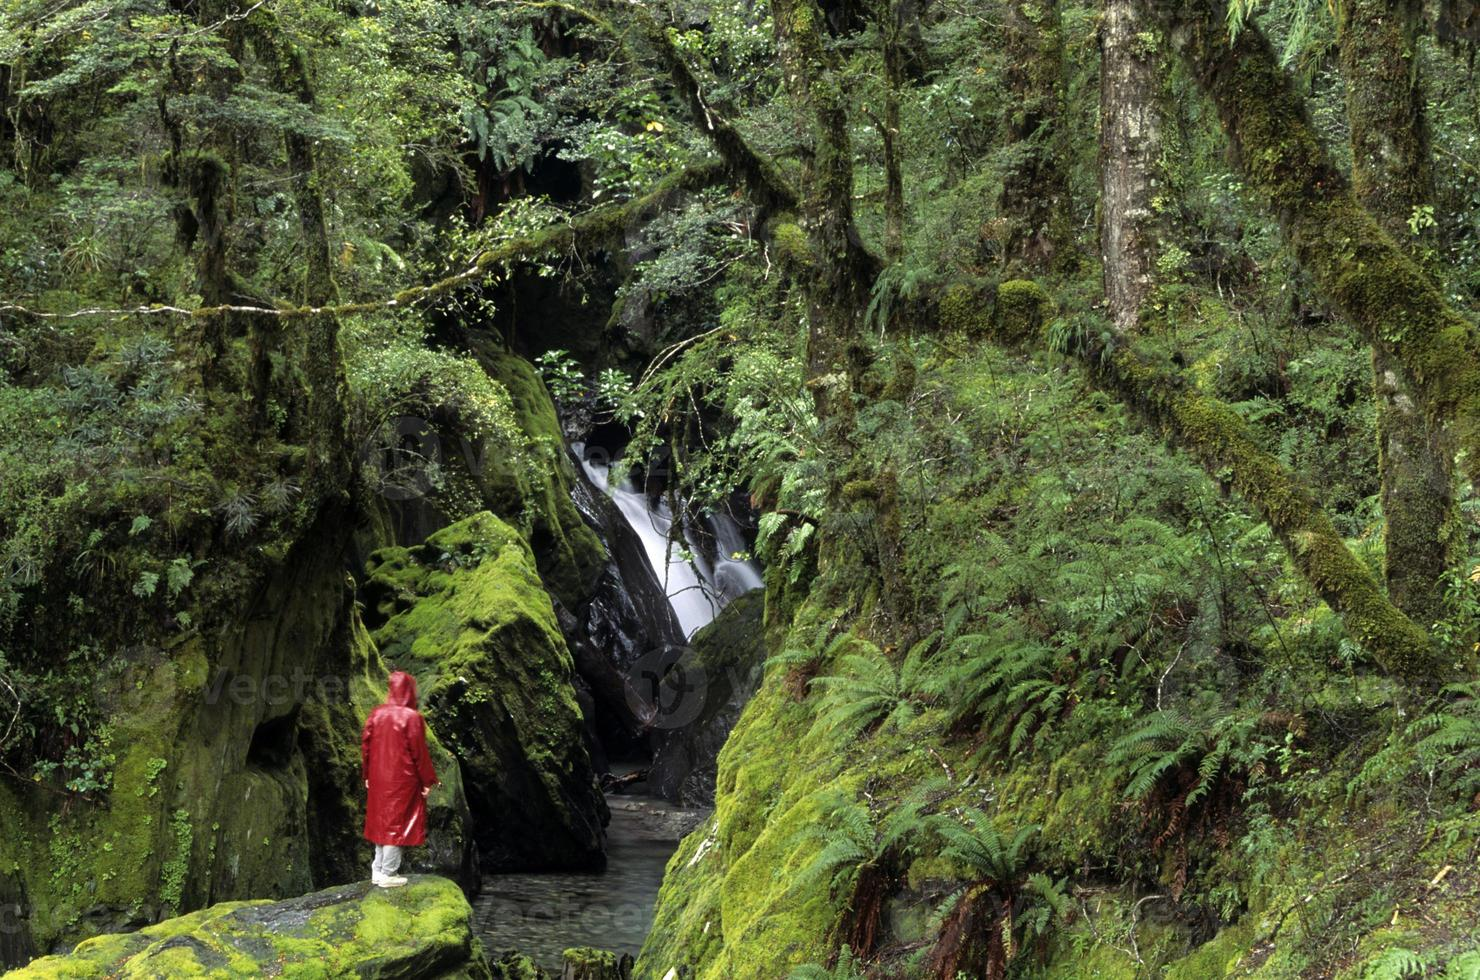 Rainforest, South Island, New Zealand with person in red raincoat. photo